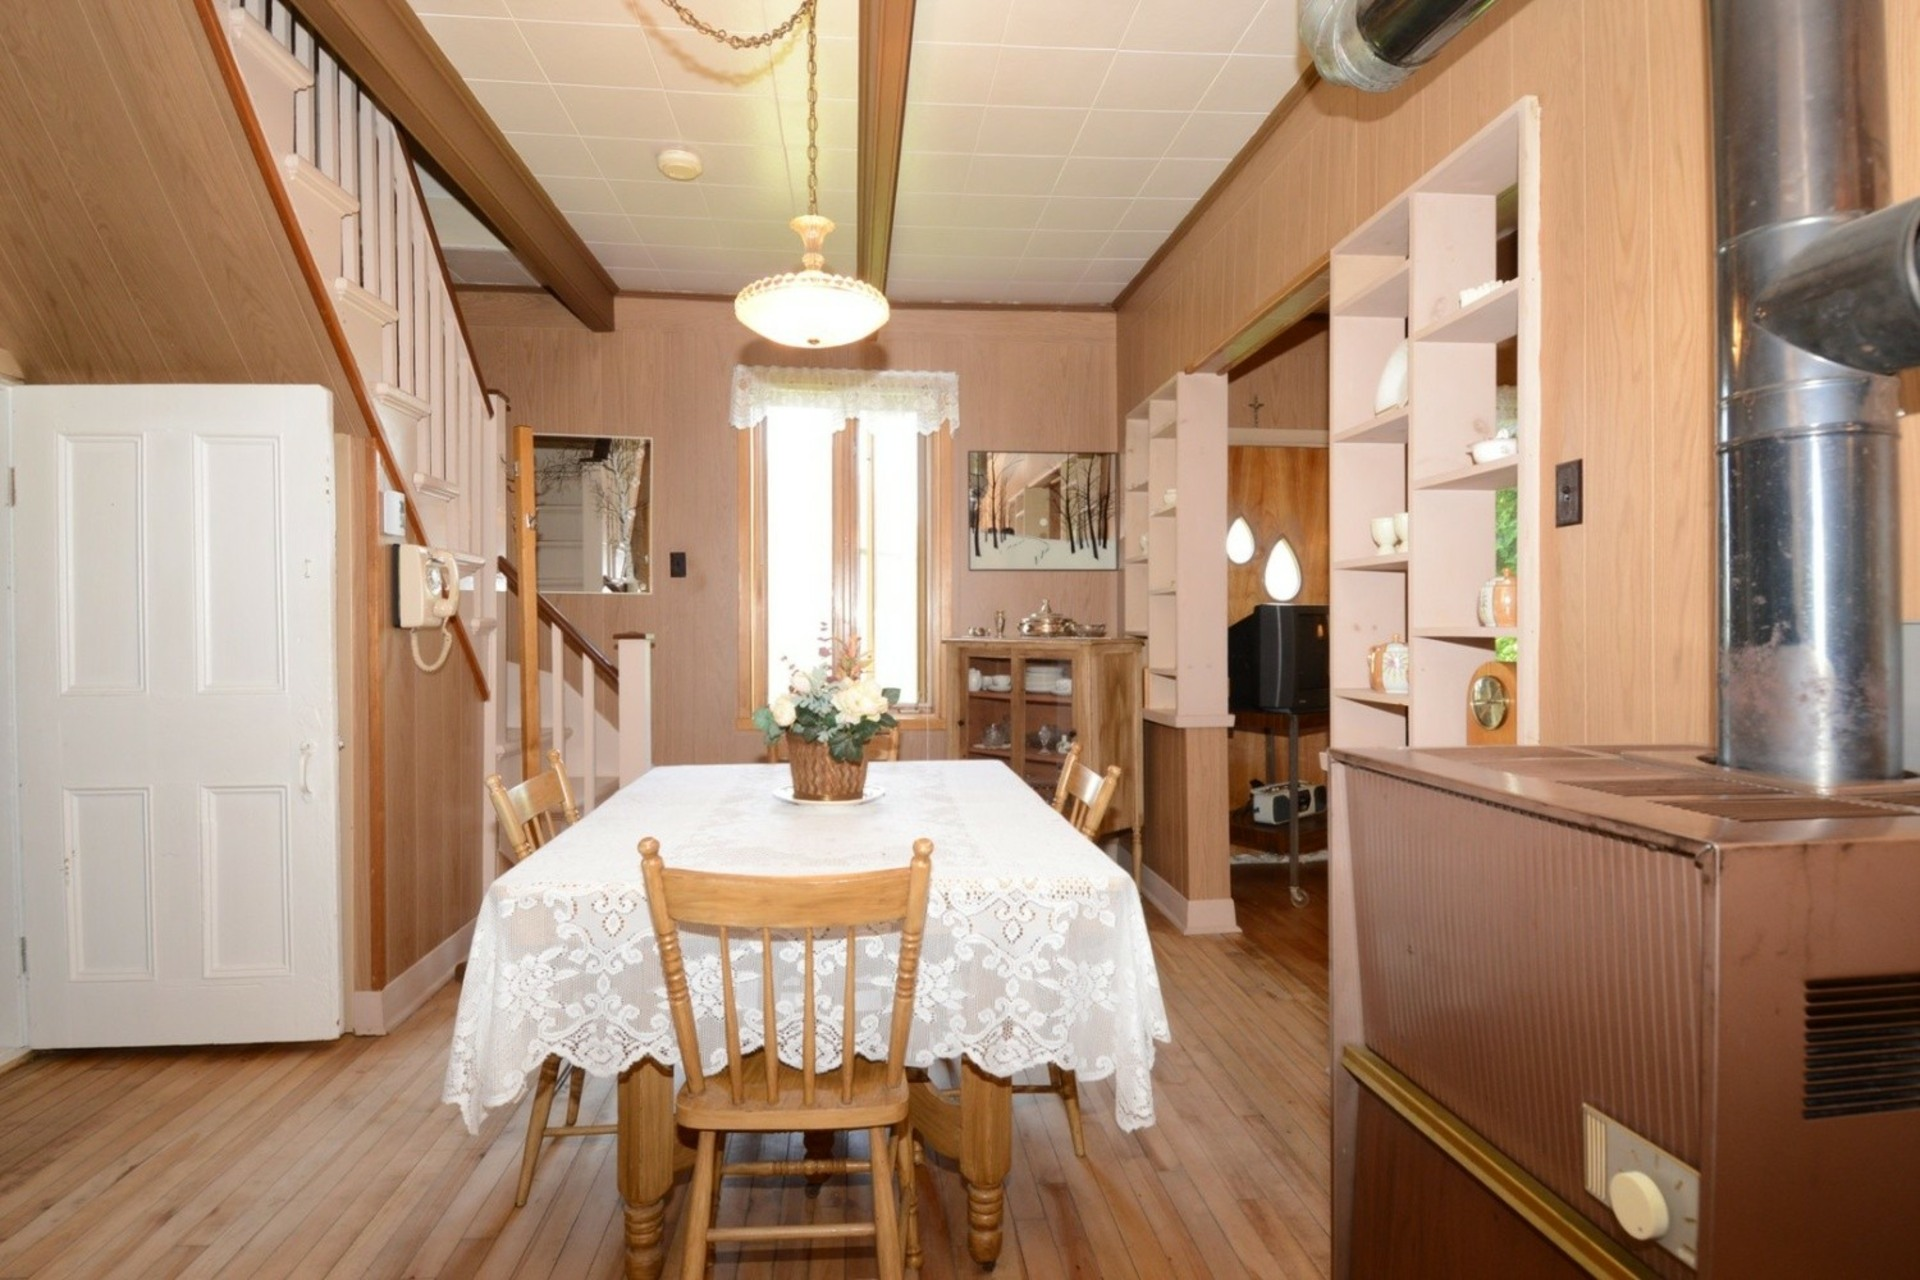 image 4 - Farmhouse For sale Rigaud - 8 rooms